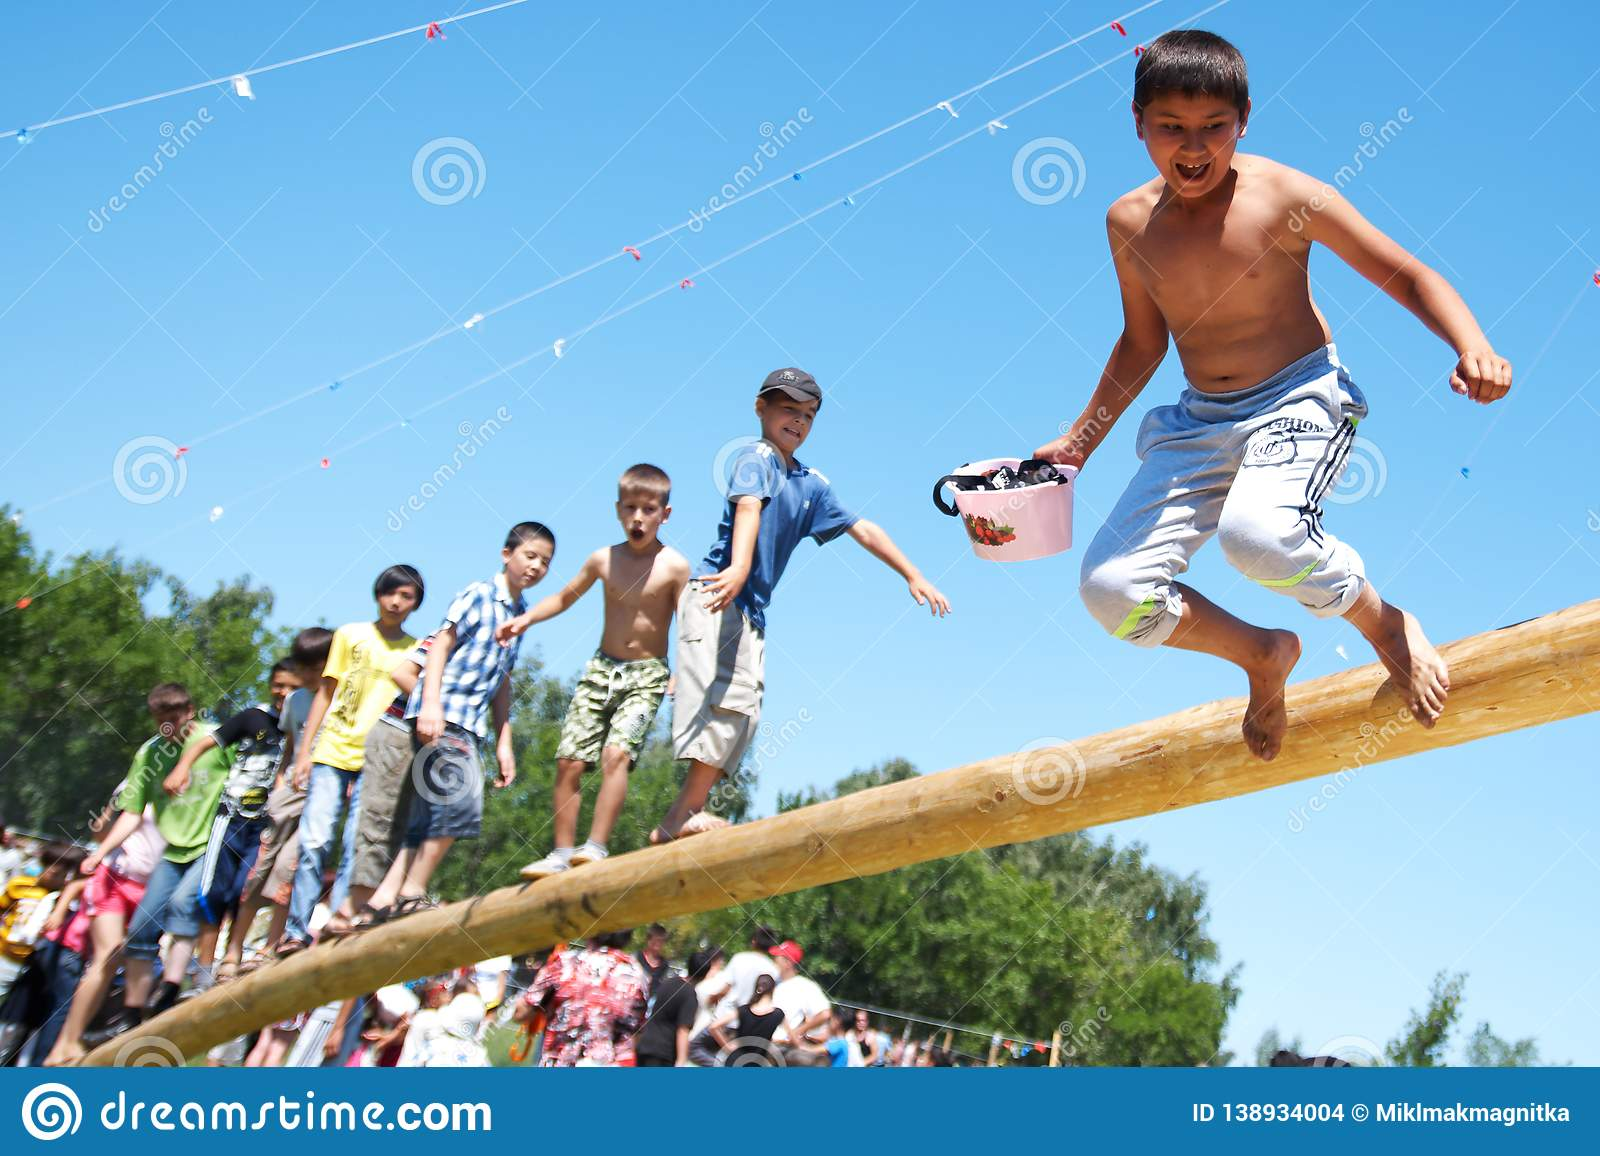 Russia, Magnitogorsk, - June, 16, 2011. Boys play national games, jump on a log, during Sabantuy - the national holiday of the